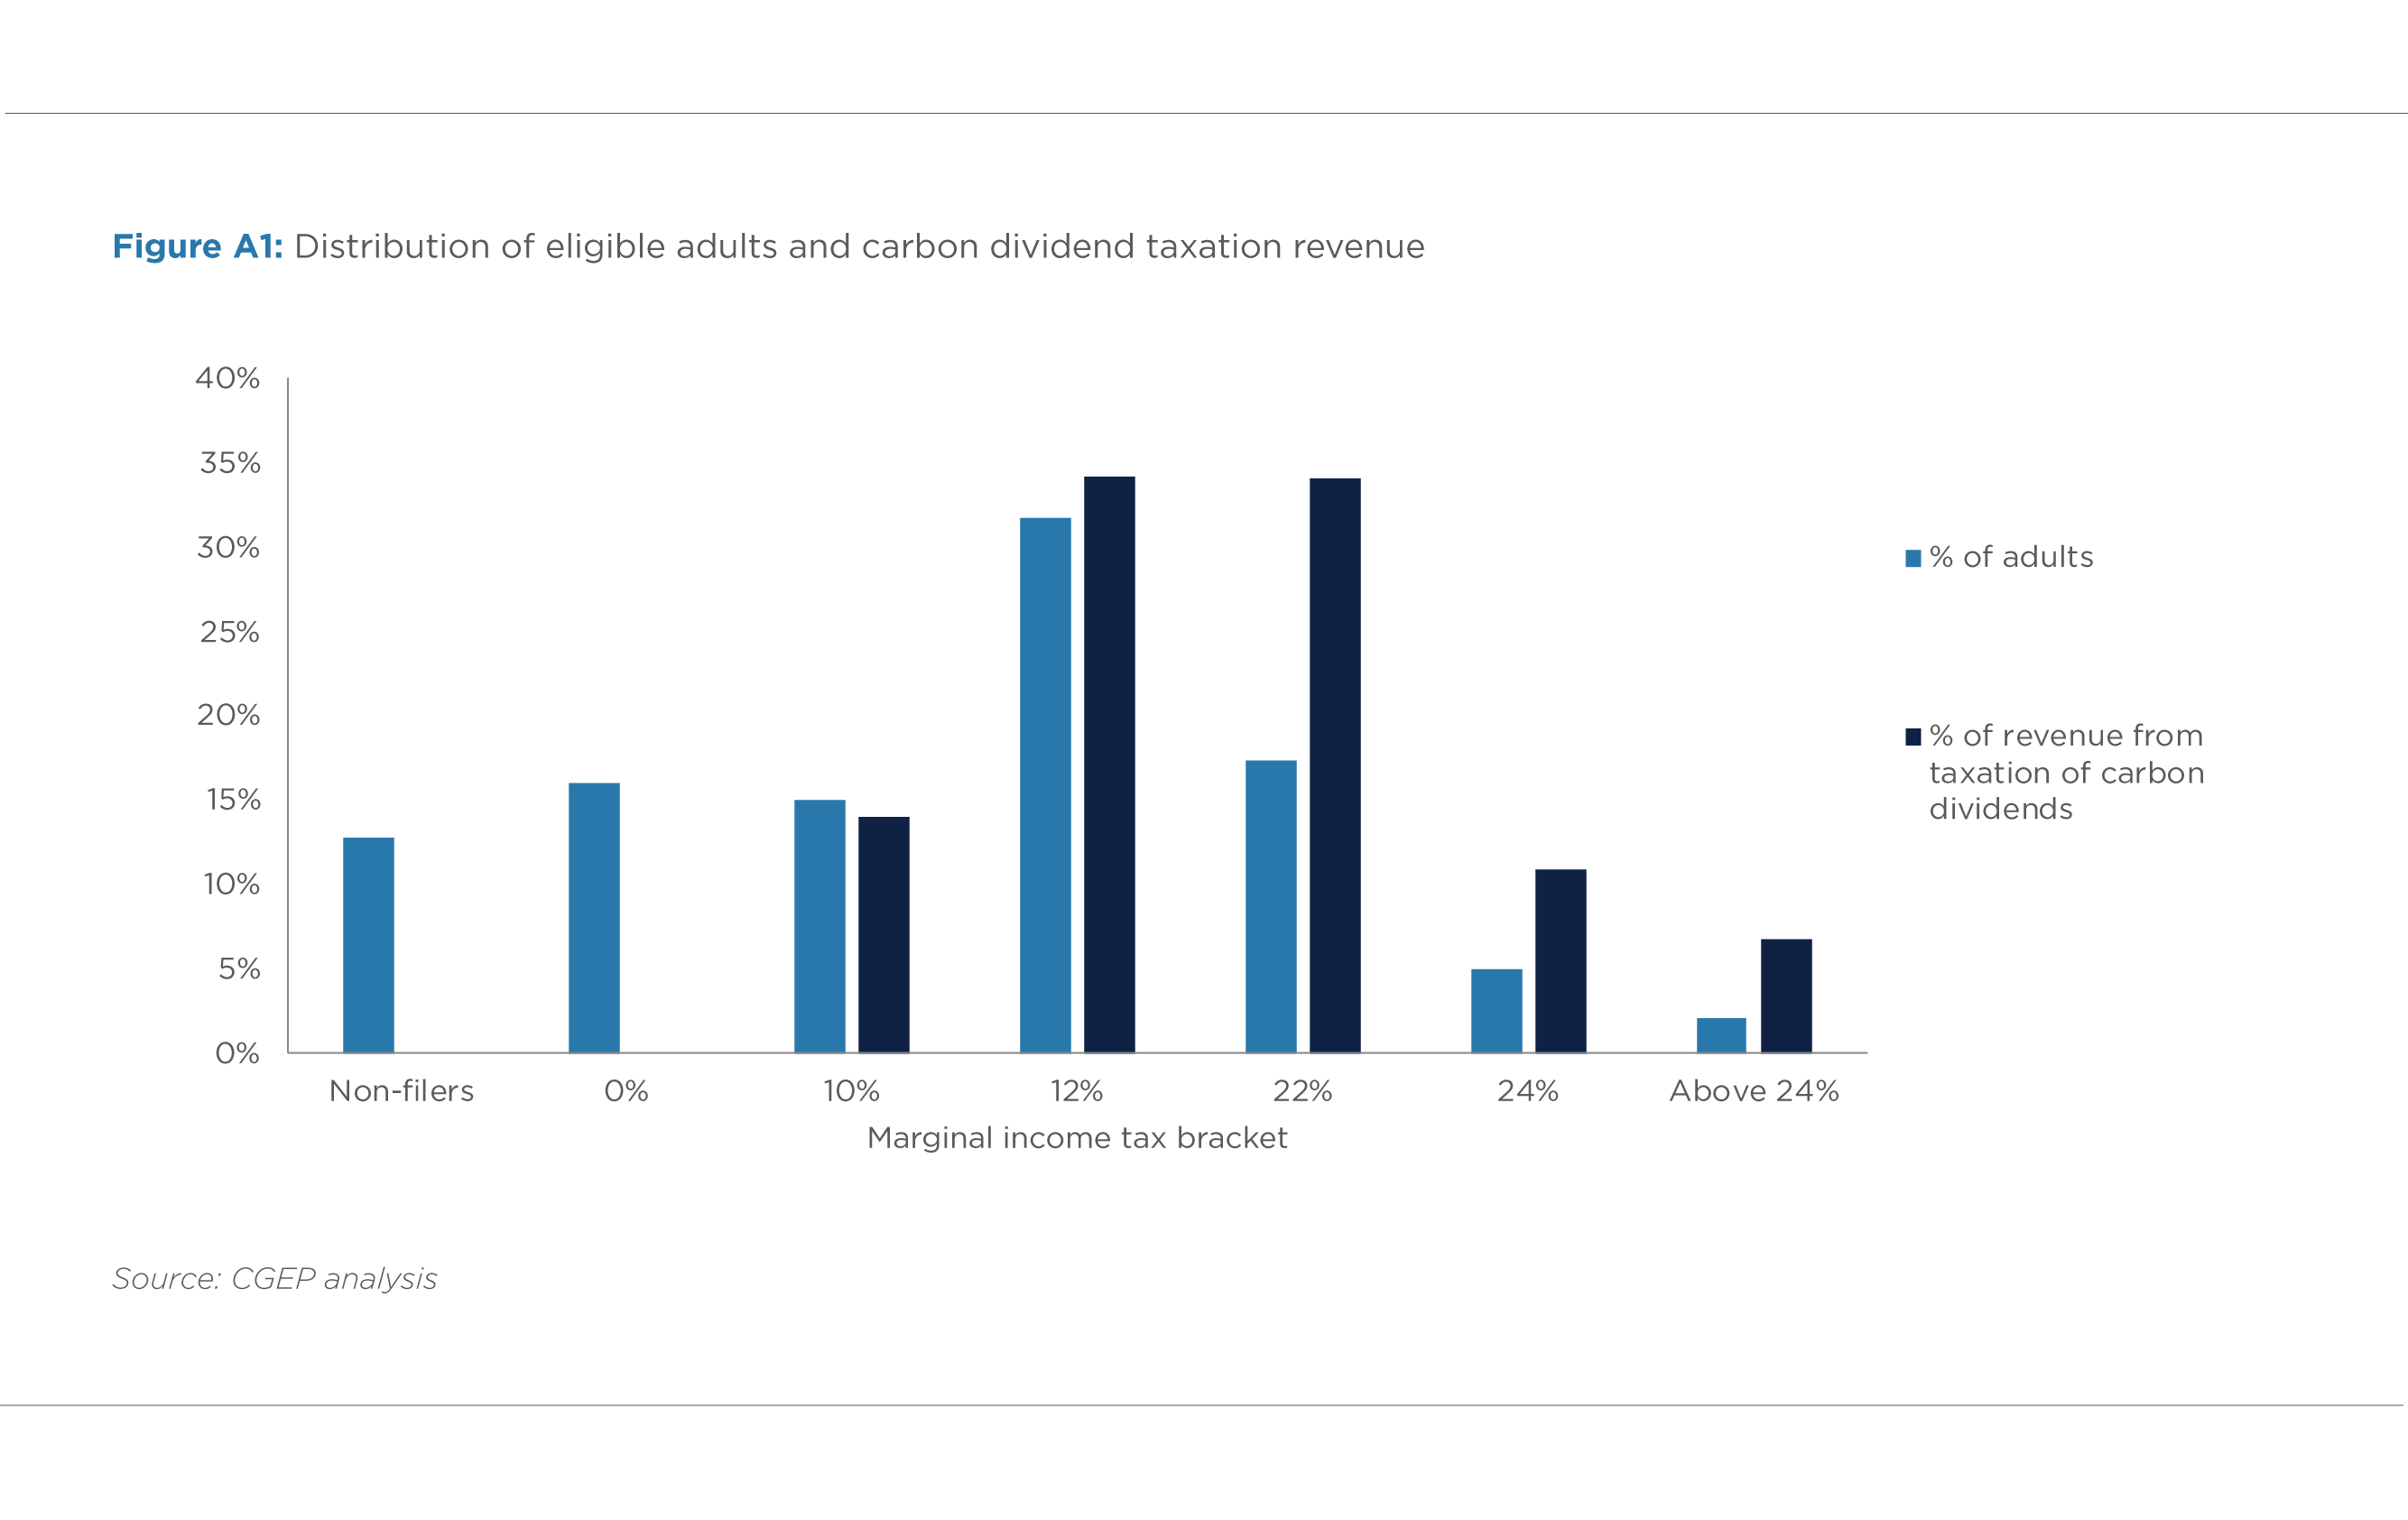 FIGURE A1. DISTRIBUTION OF ELIGIBLE ADULTS AND CARBON DIVIDEND TAXATION REVENUE